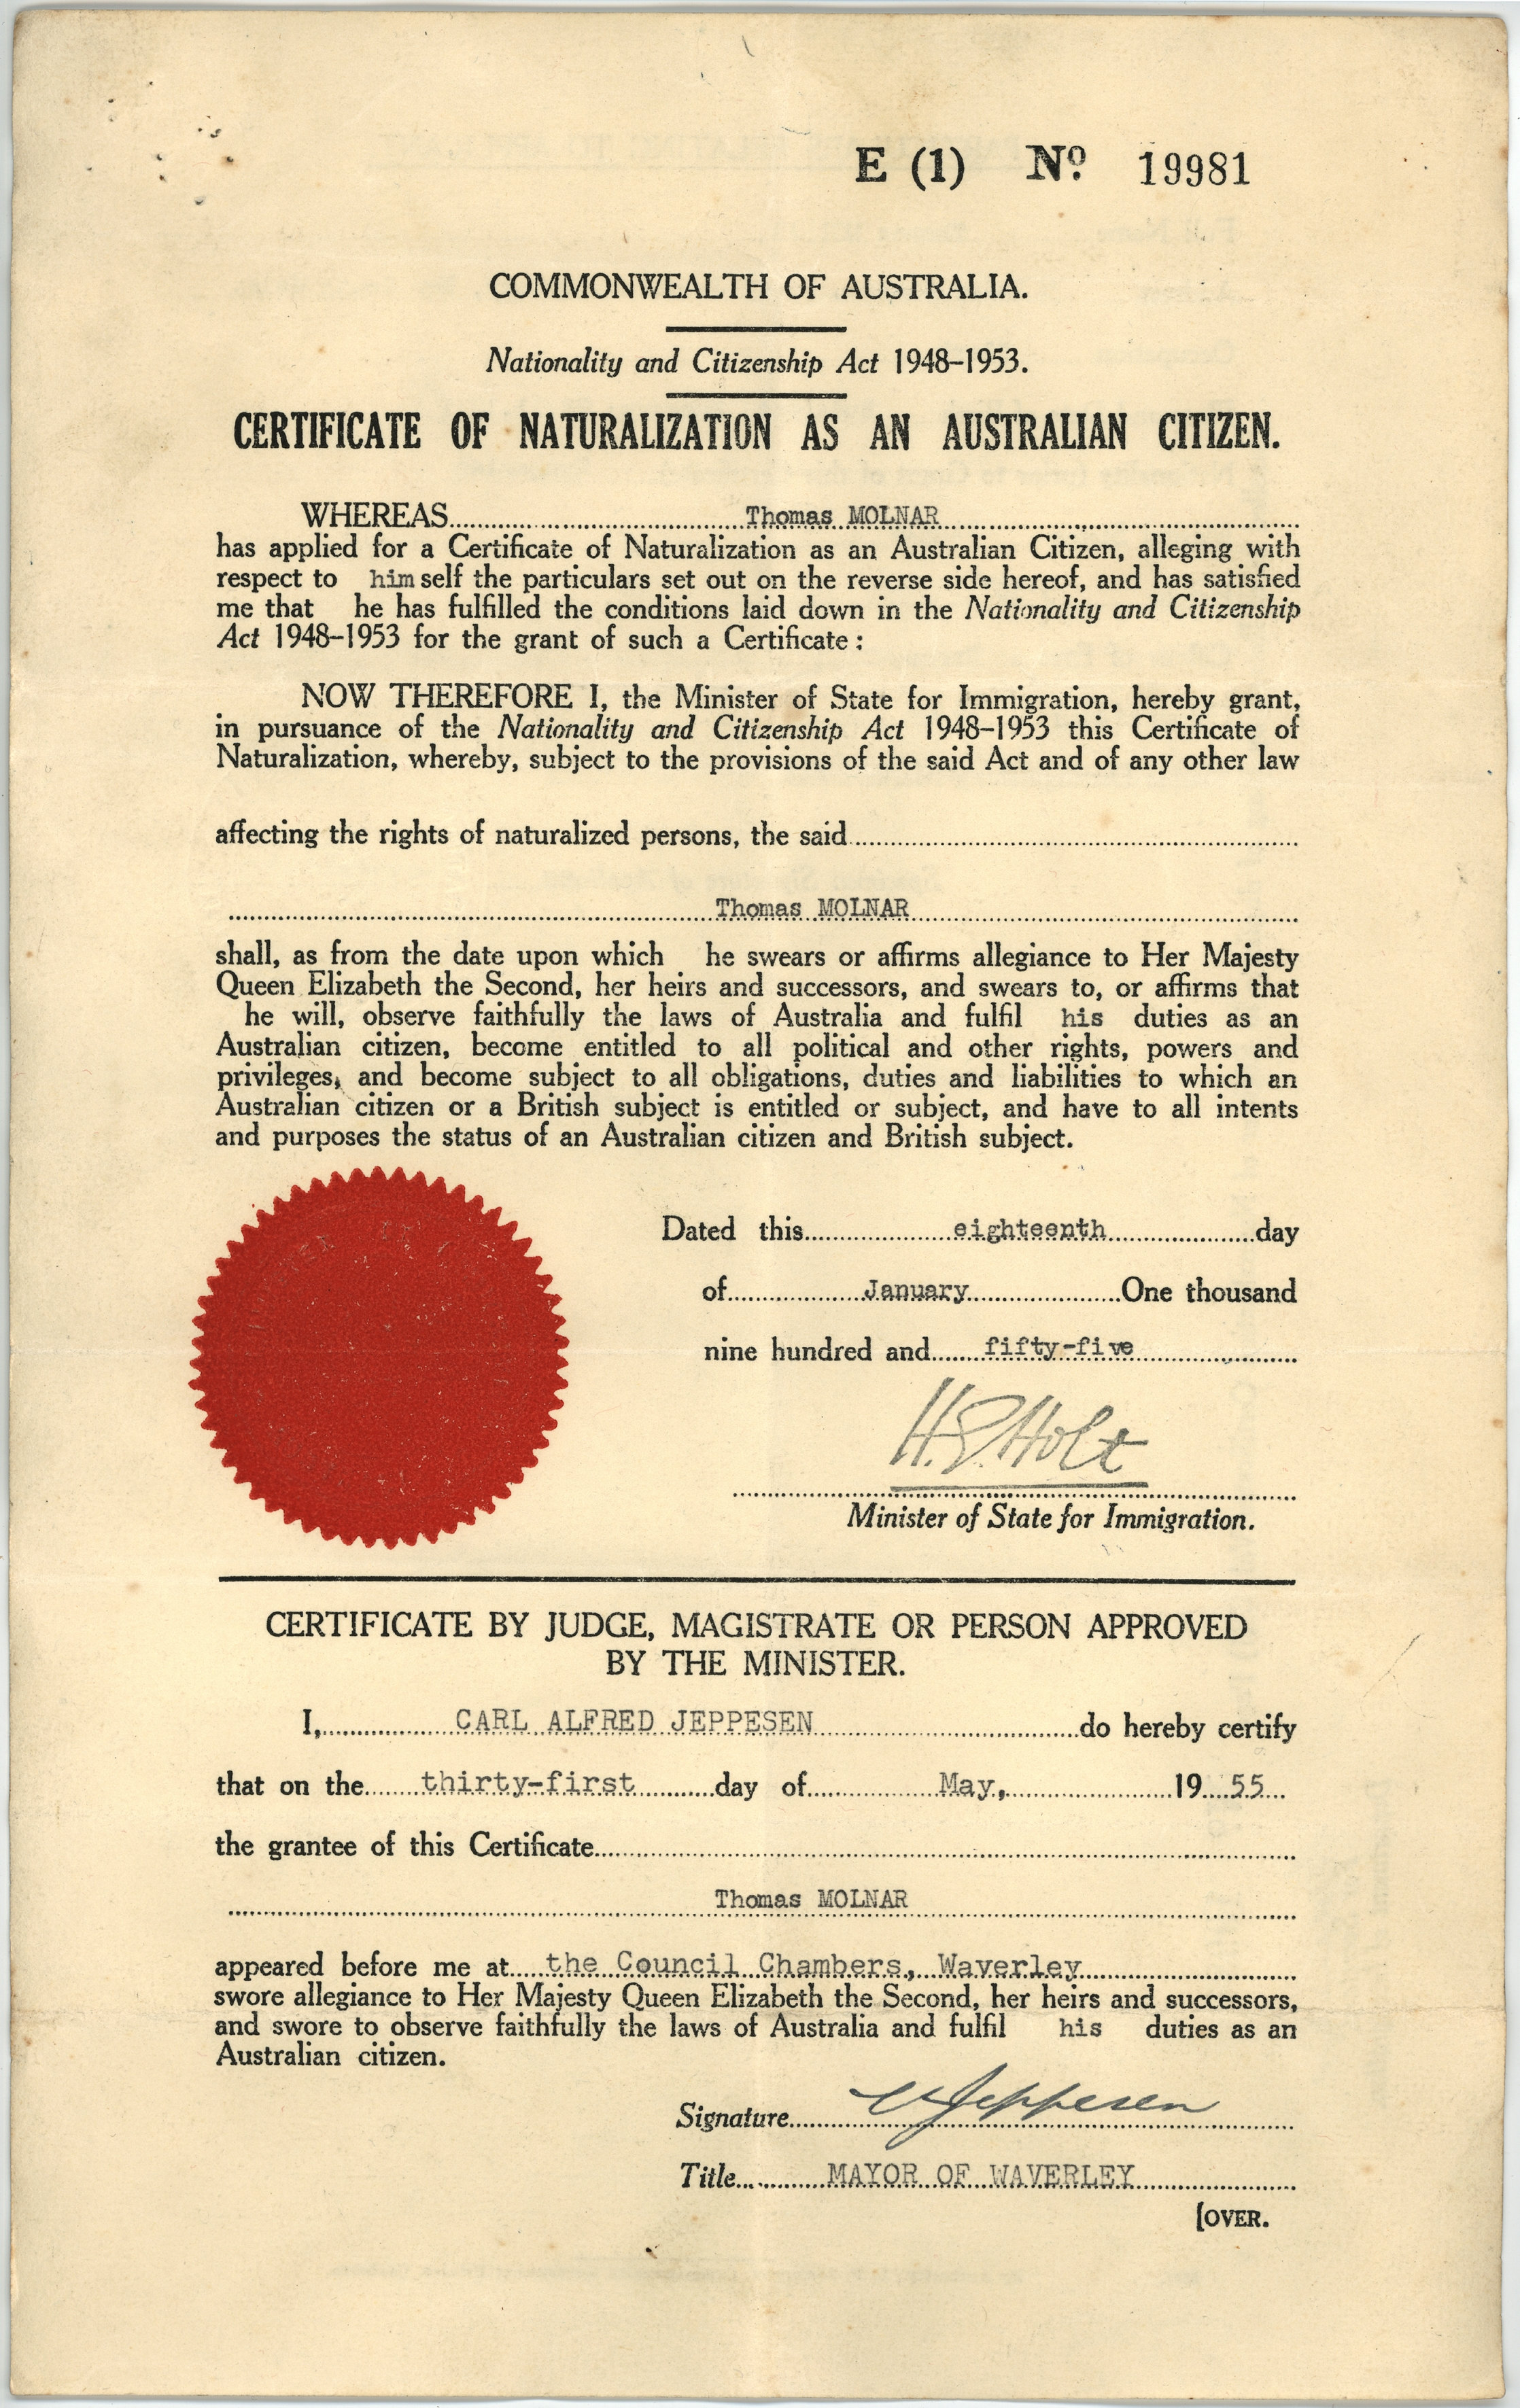 Thomas Molnars Certificate Of Naturalization As An Australian